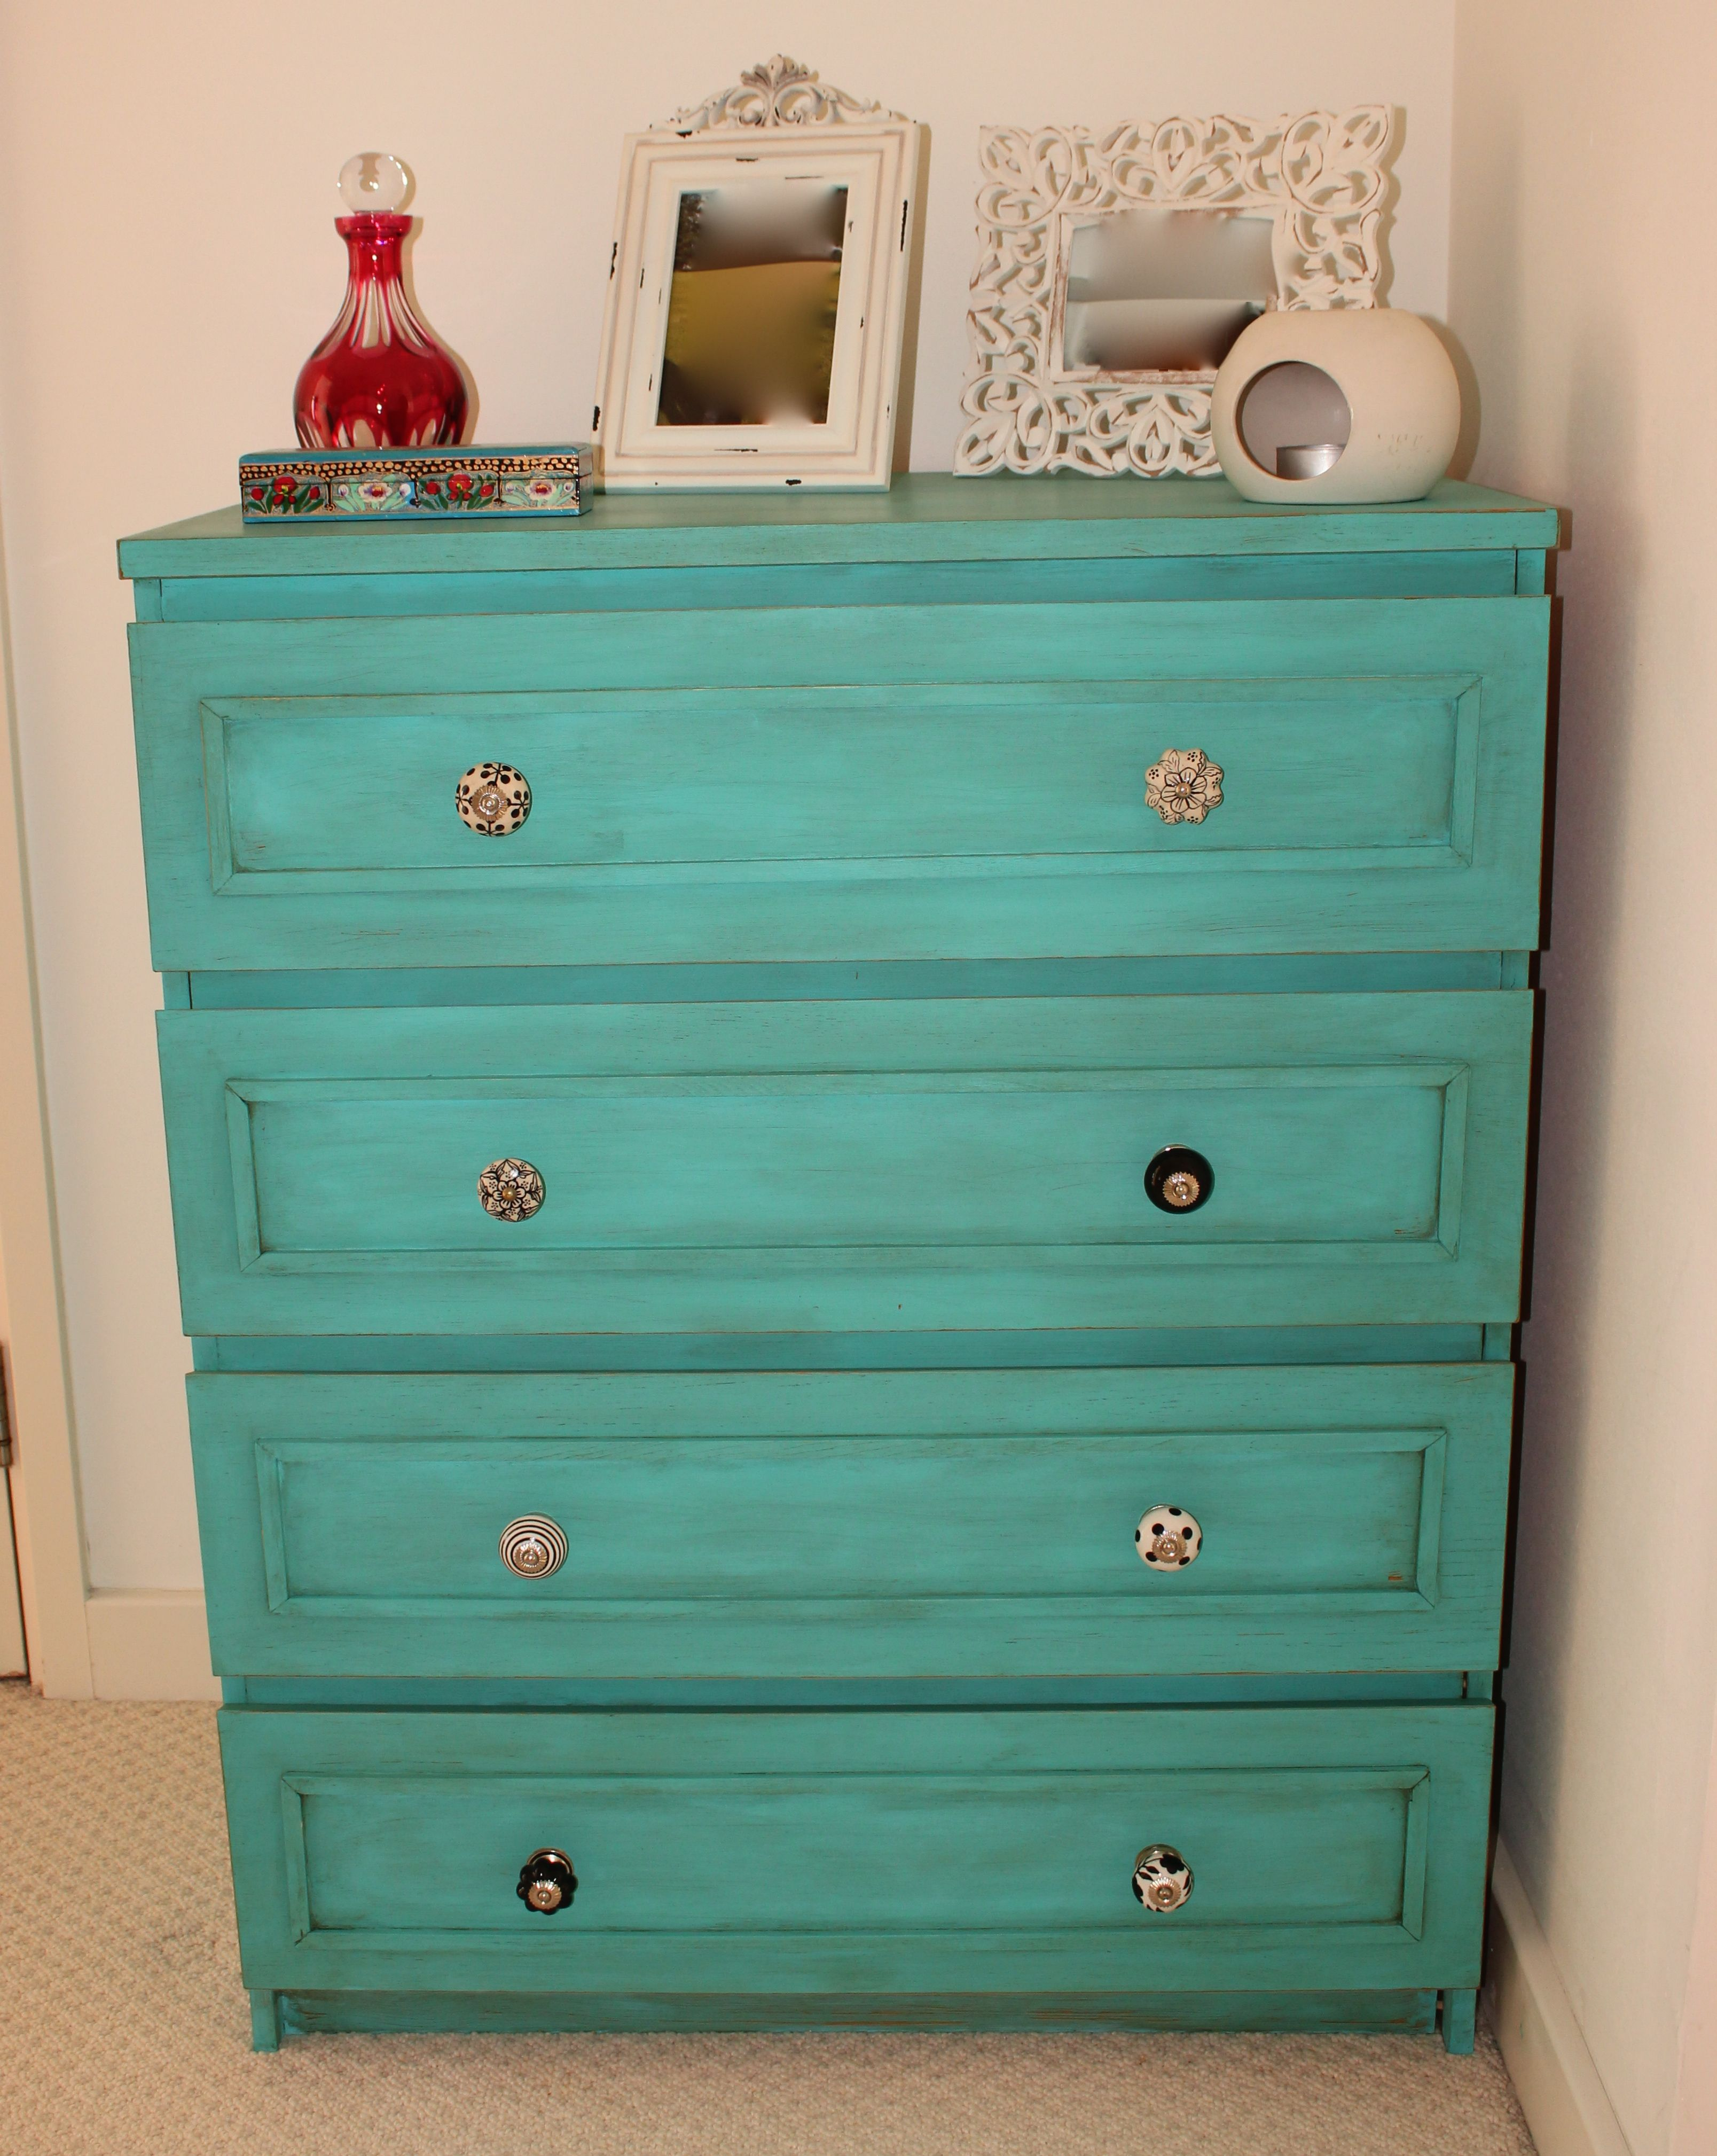 Ikea Möbel Bemalen Ikea Malm Dresser Painted In Autentico Bright Turquoise And